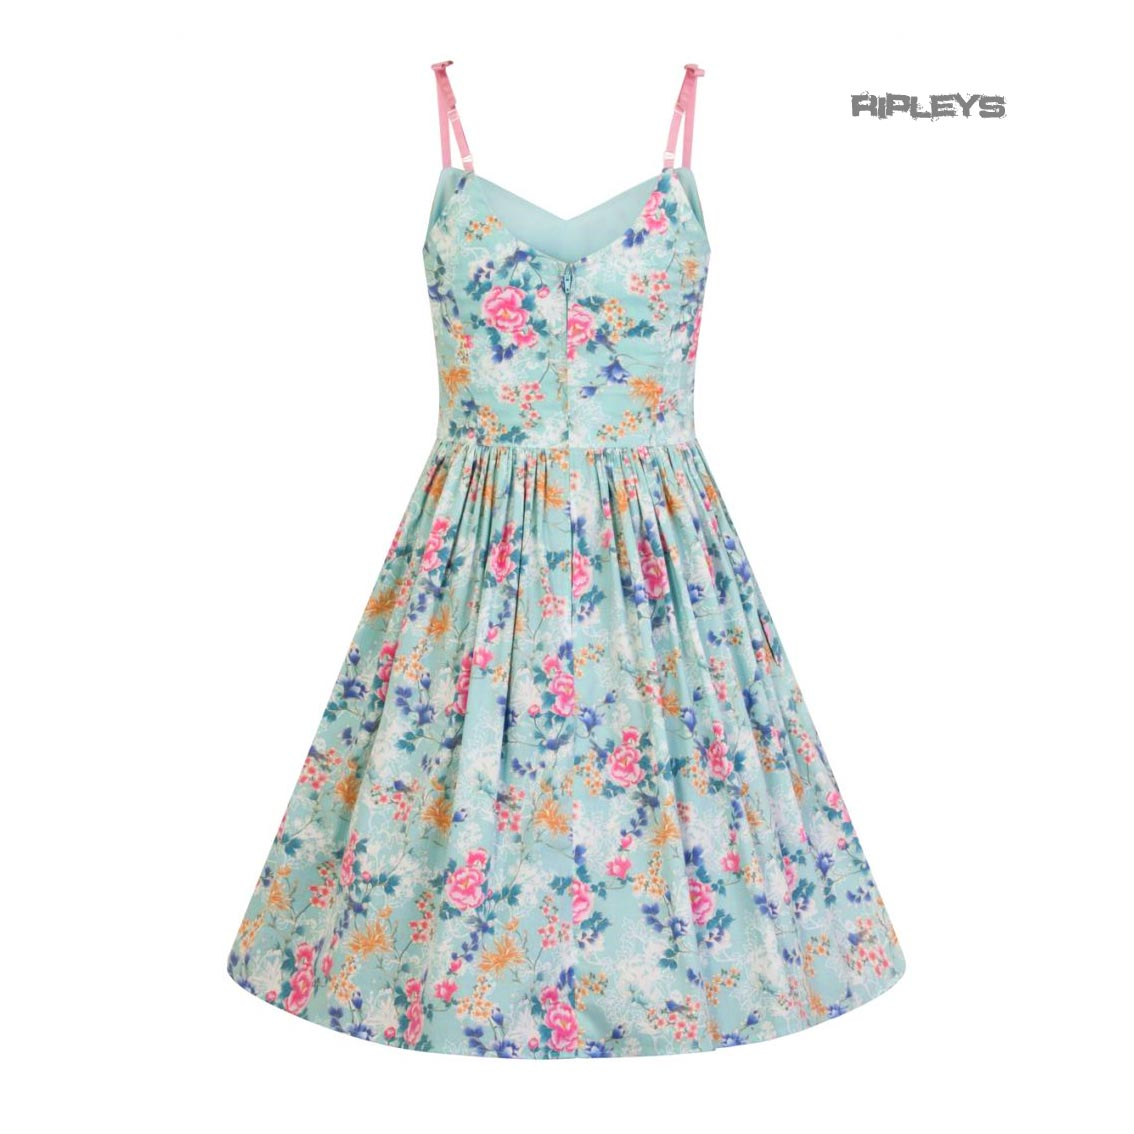 Hell-Bunny-50s-Mid-Length-Dress-Vintage-Blue-Pink-SAKURA-Flowers-Roses-All-Sizes thumbnail 29